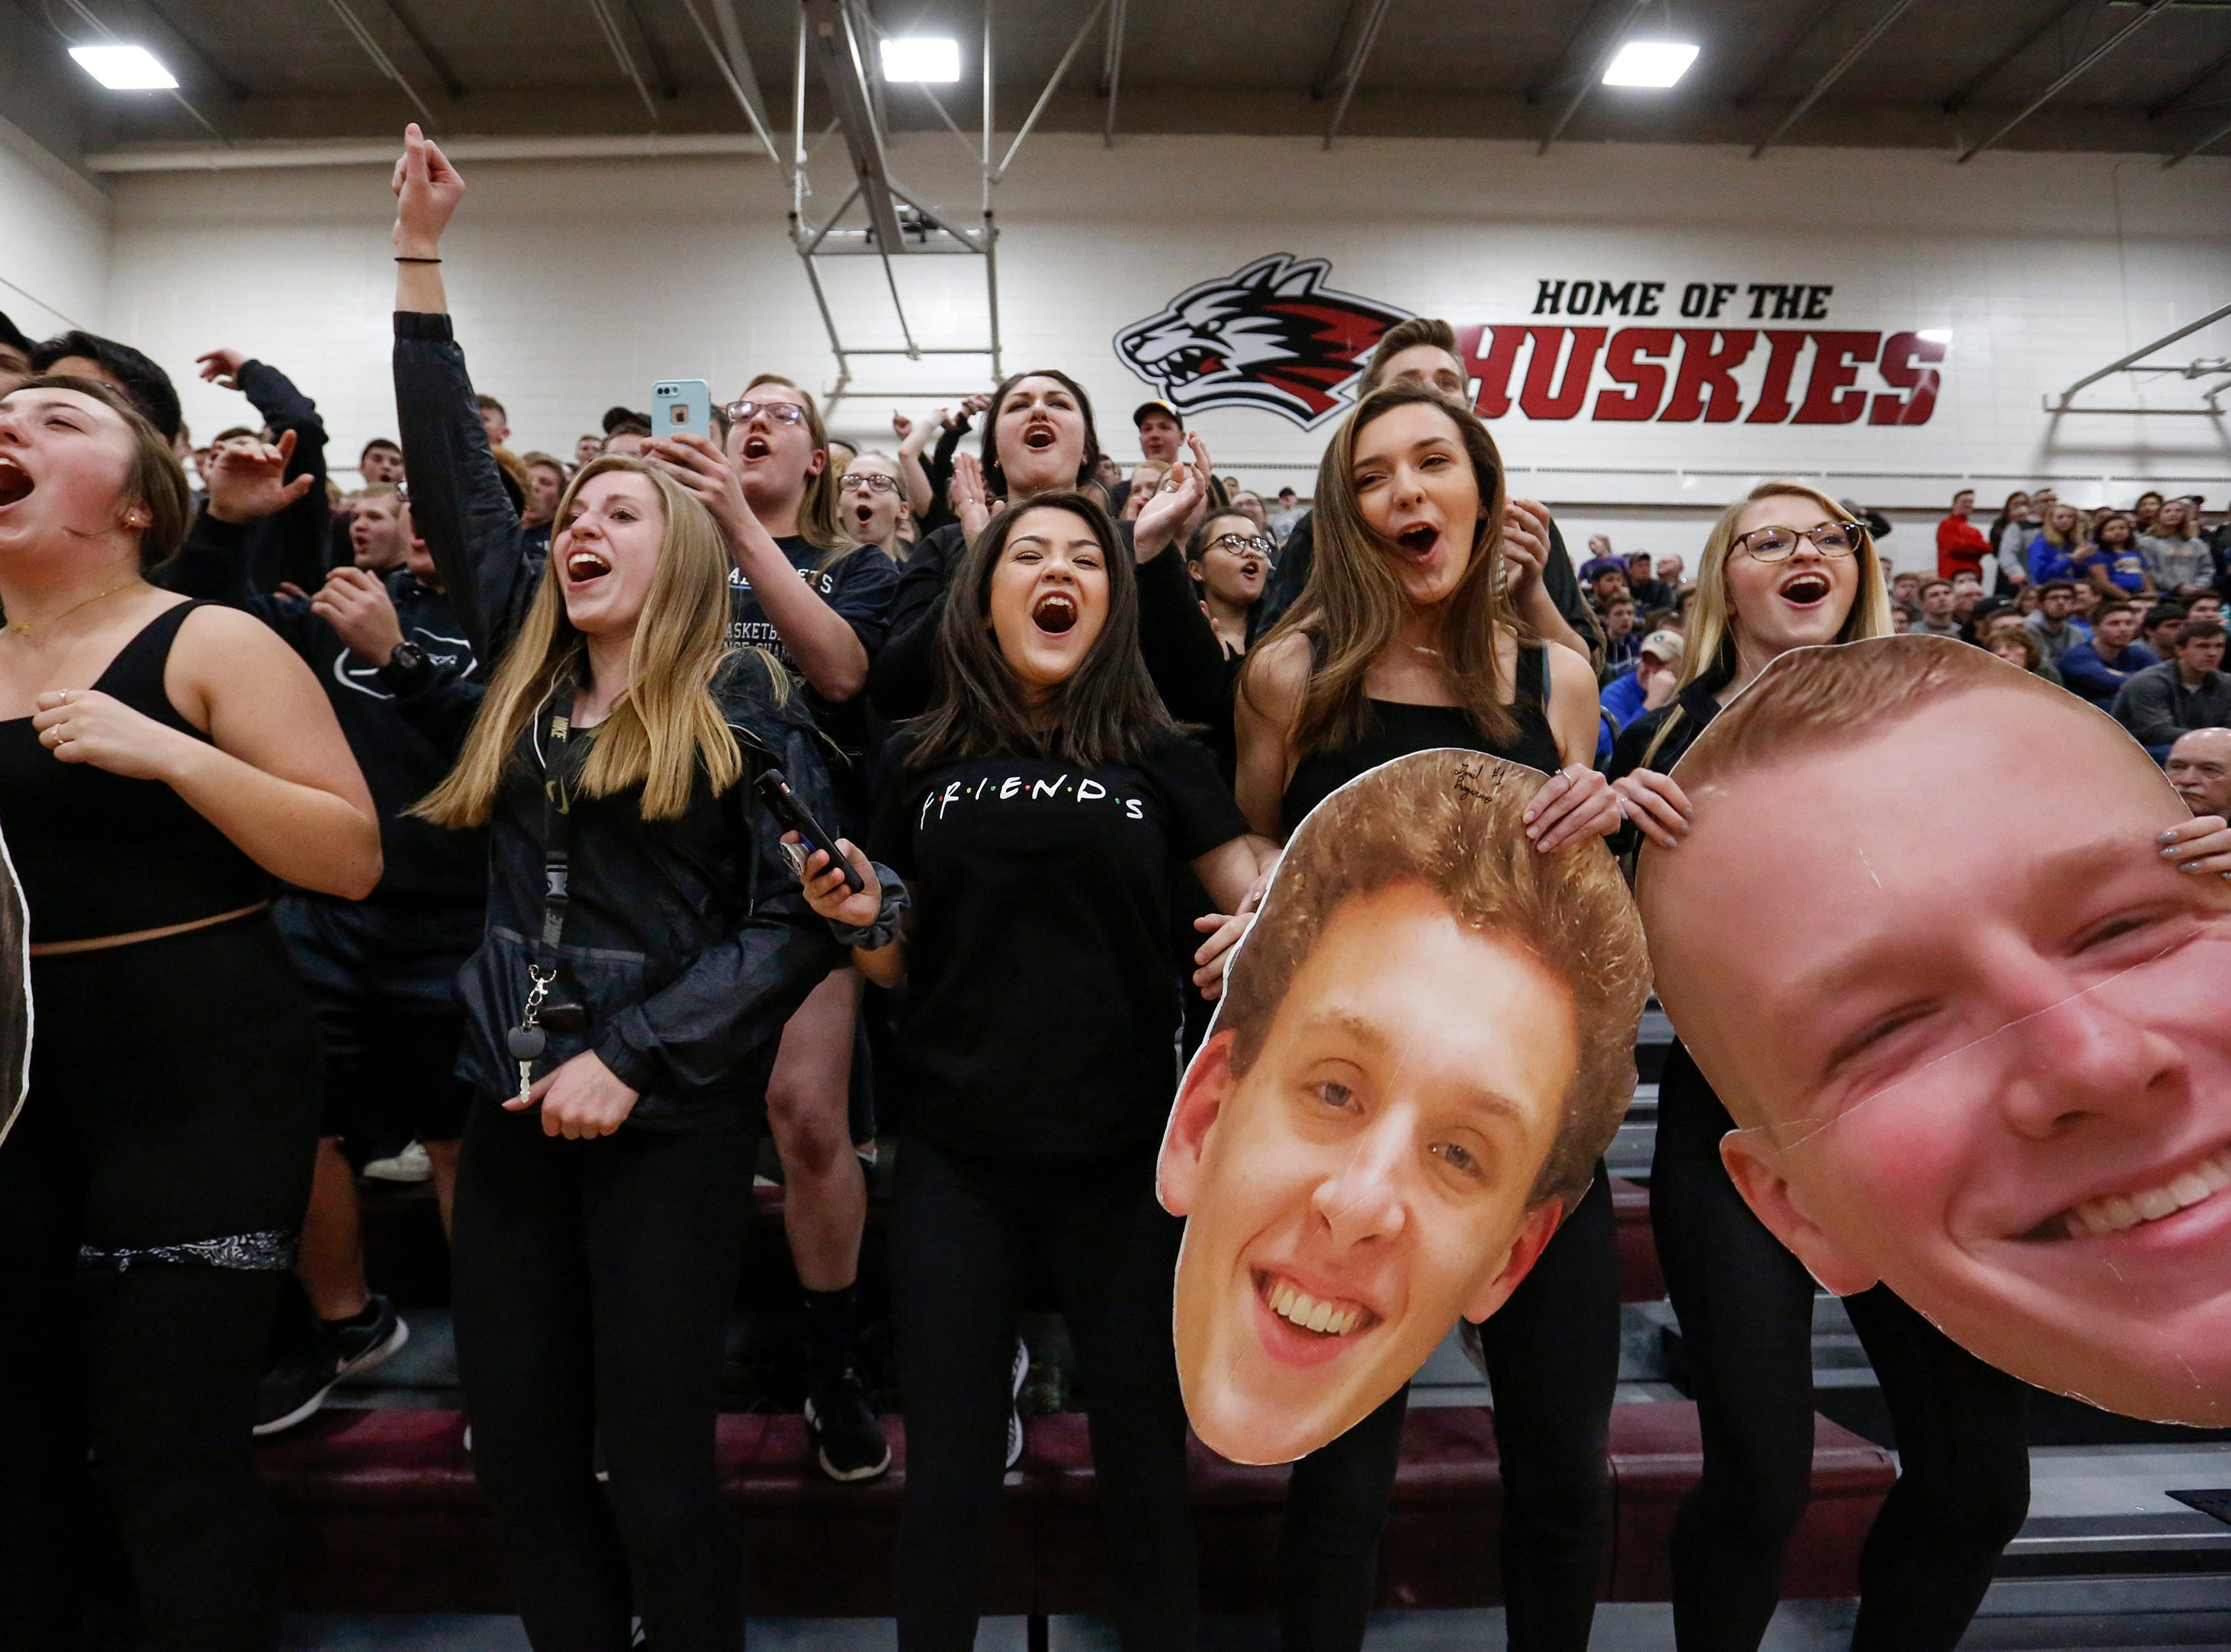 Roncalli's student section reacts as the final seconds tick off the clock and the Jets defeat Howards Grove 63-50 in a WIAA Division 4 sectional semifinal at New Holstein High School Thursday, March 7, 2019, in New Holstein, Wis. Joshua Clark/USA TODAY NETWORK-Wisconsin